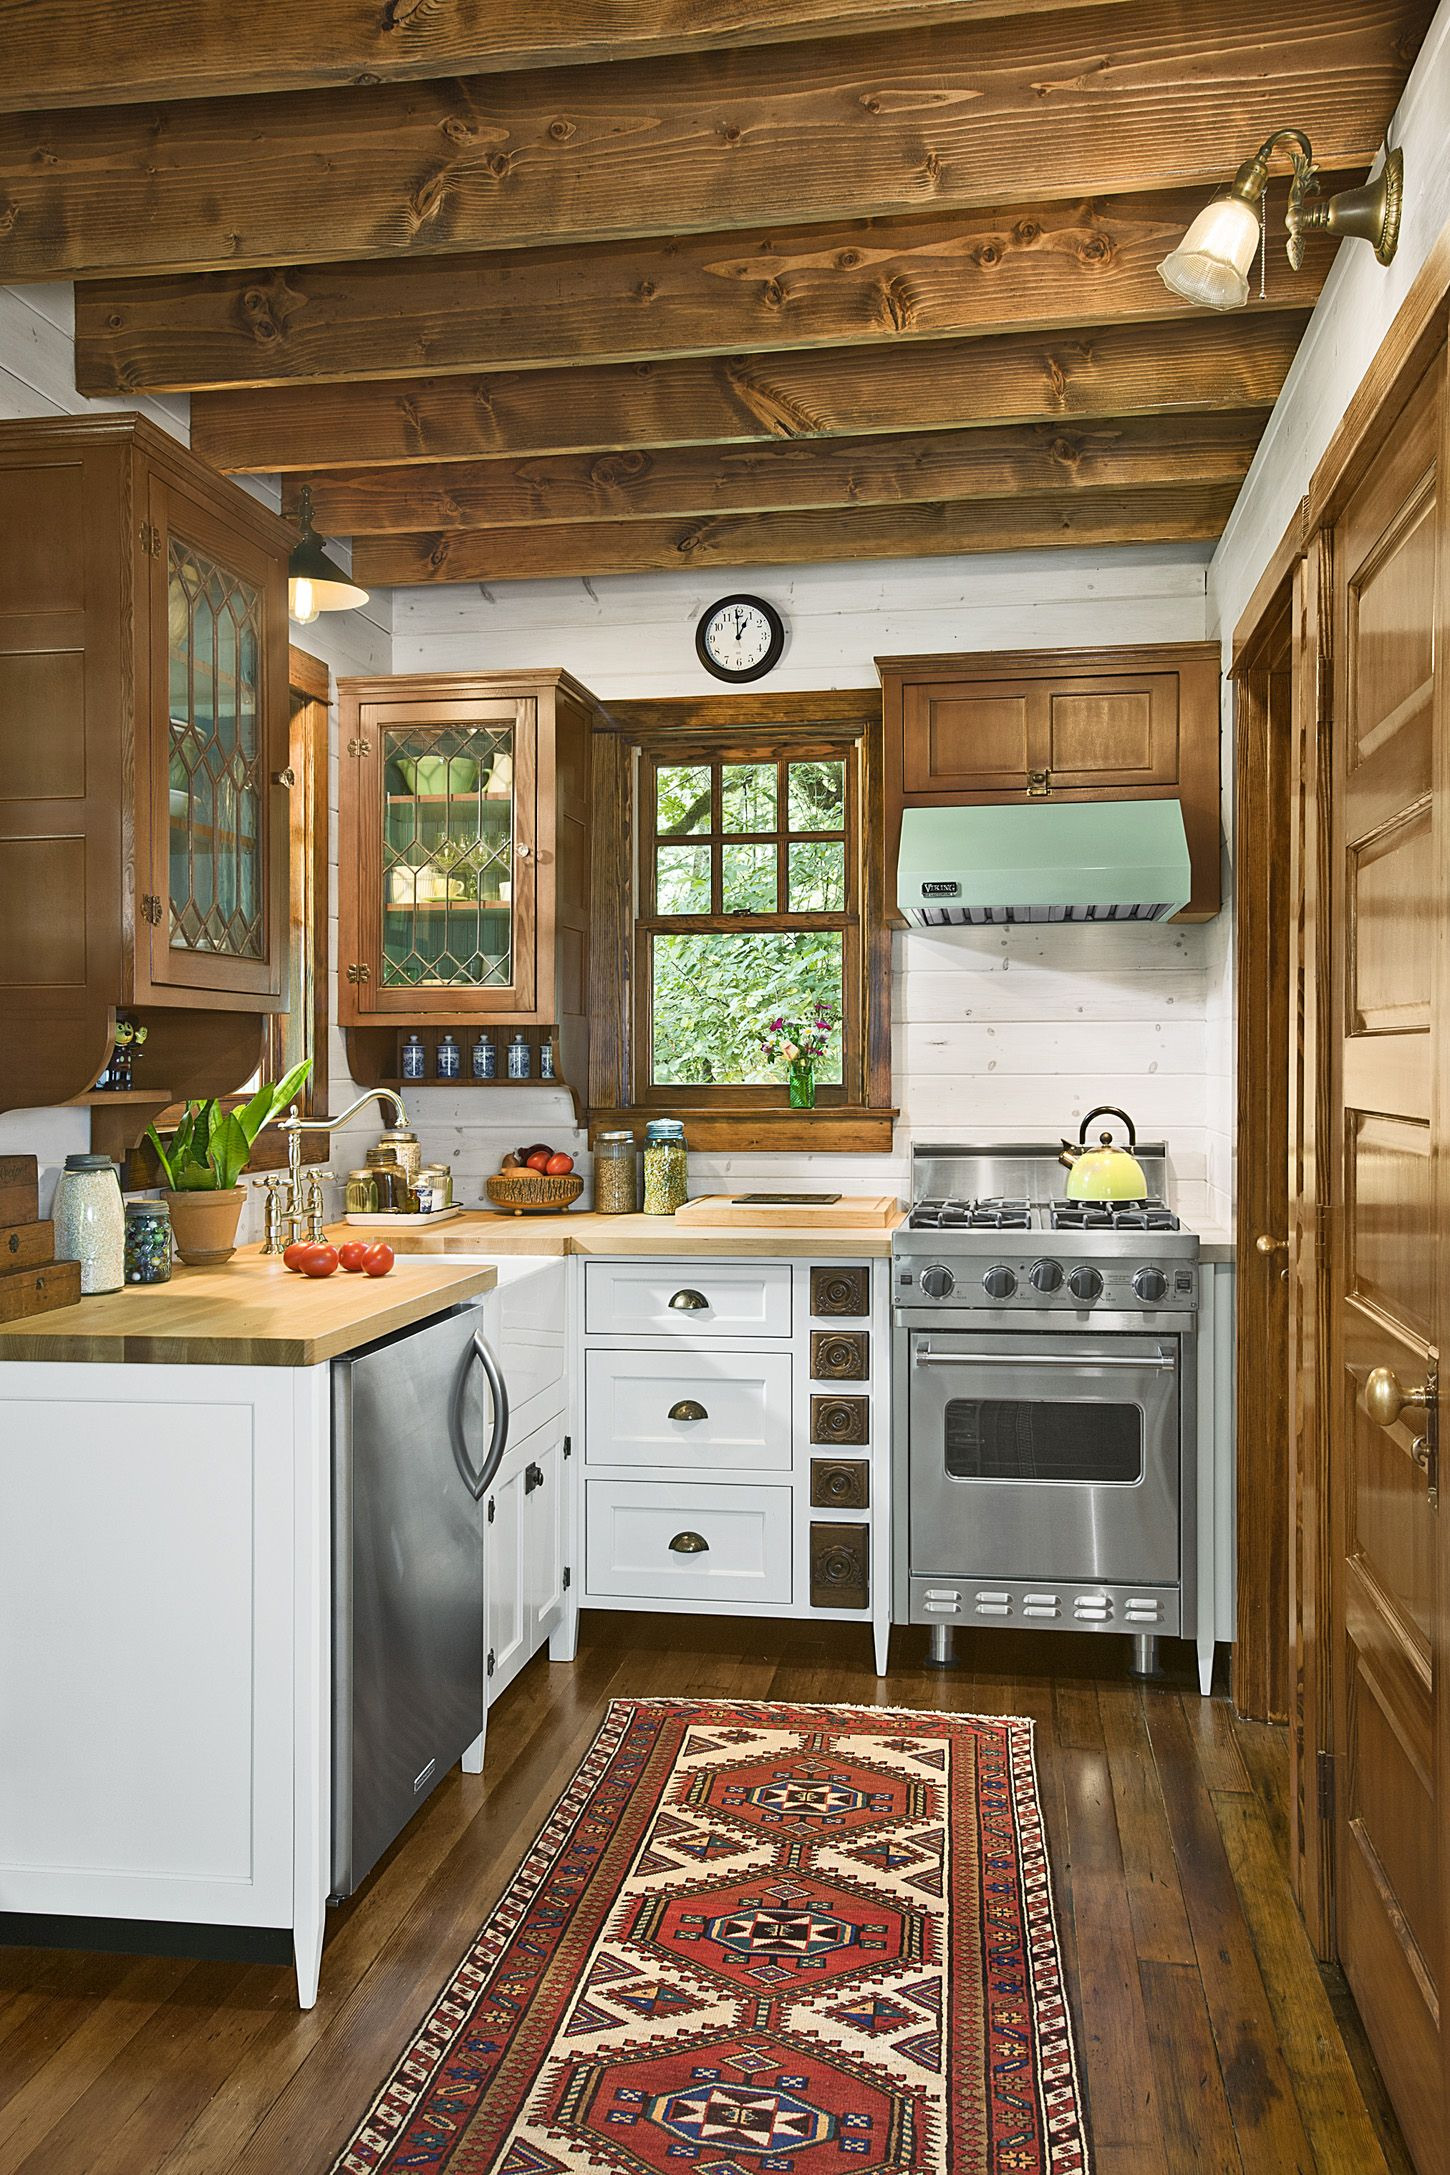 Small Home Design Photos Unique 86 Best Tiny Houses 2020 Small House & Plans